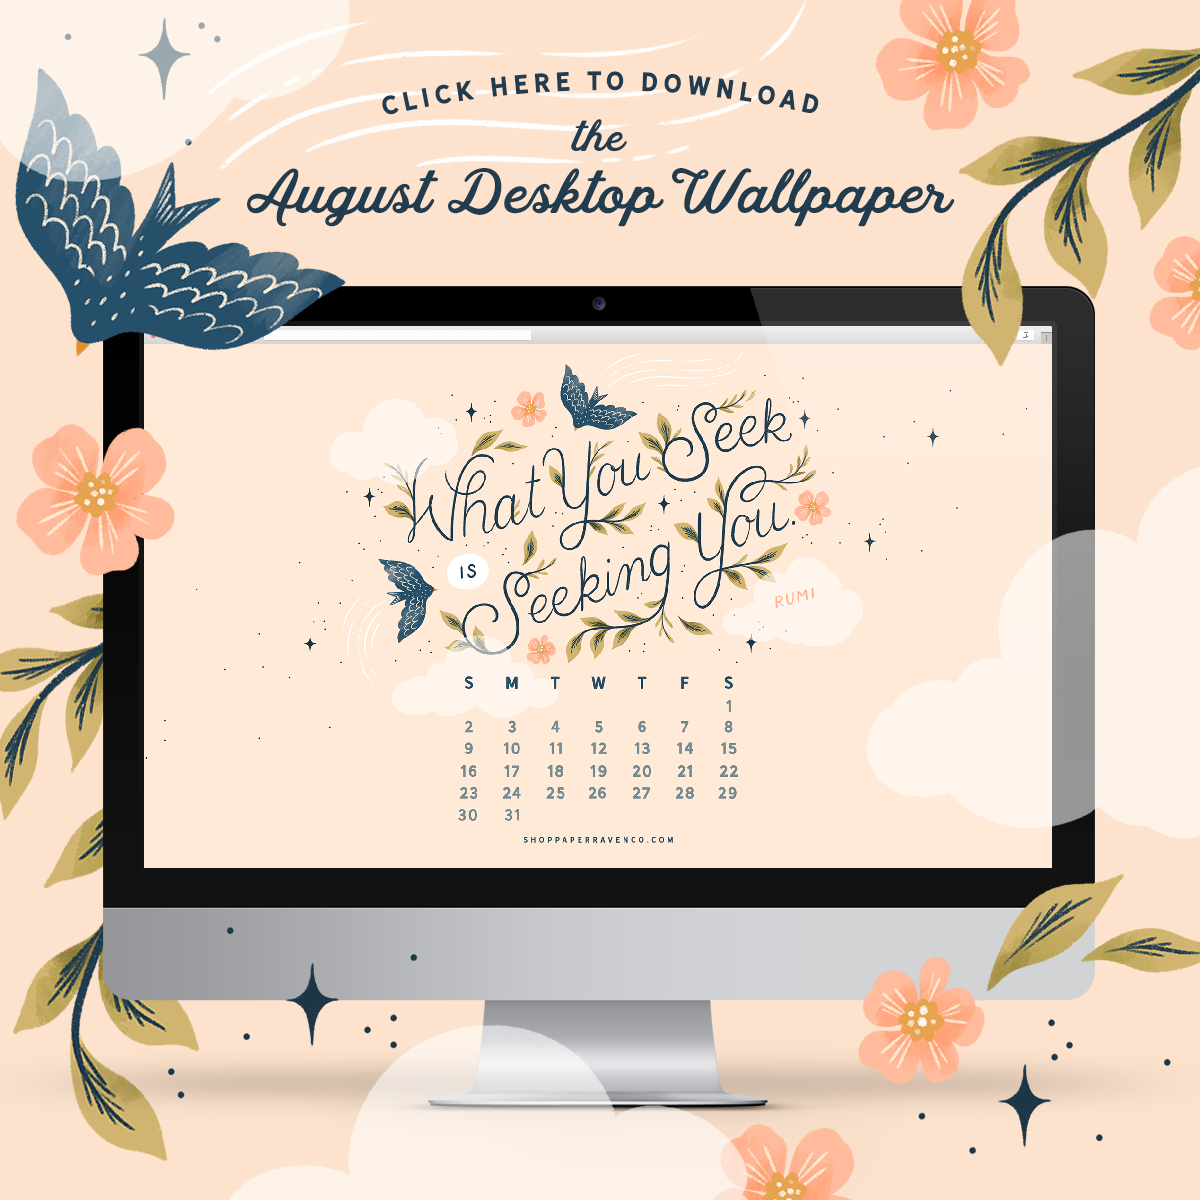 August 2020 Illustrated Desktop Wallpaper by Paper Raven Co. | www.ShopPaperRavenCo.com #dressyourtech #desktopwallpaper #desktopdownload